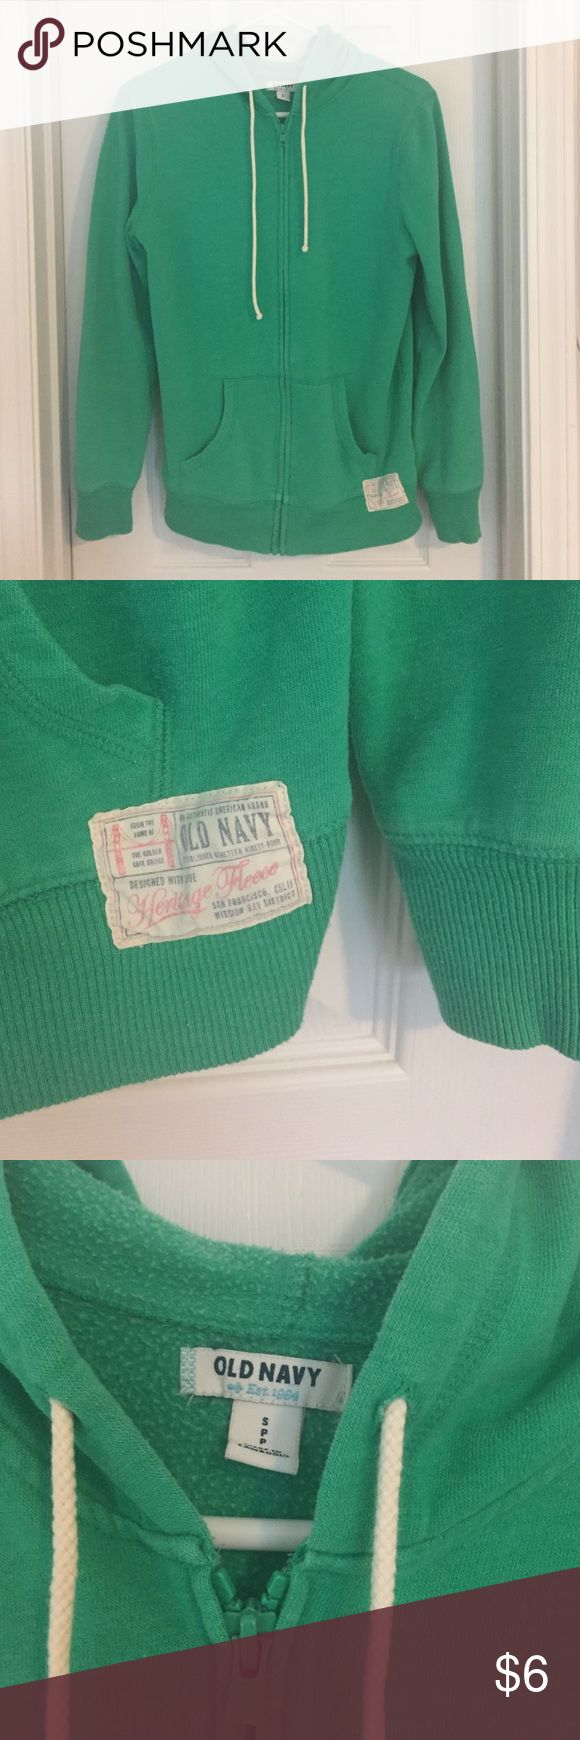 WOMEN: old navy hoodie old navy    zip-up hoodie    small    it's really more green than pictured    great used condition other than the bleach stain on backside of left sleeve ): Old Navy Tops Sweatshirts & Hoodies